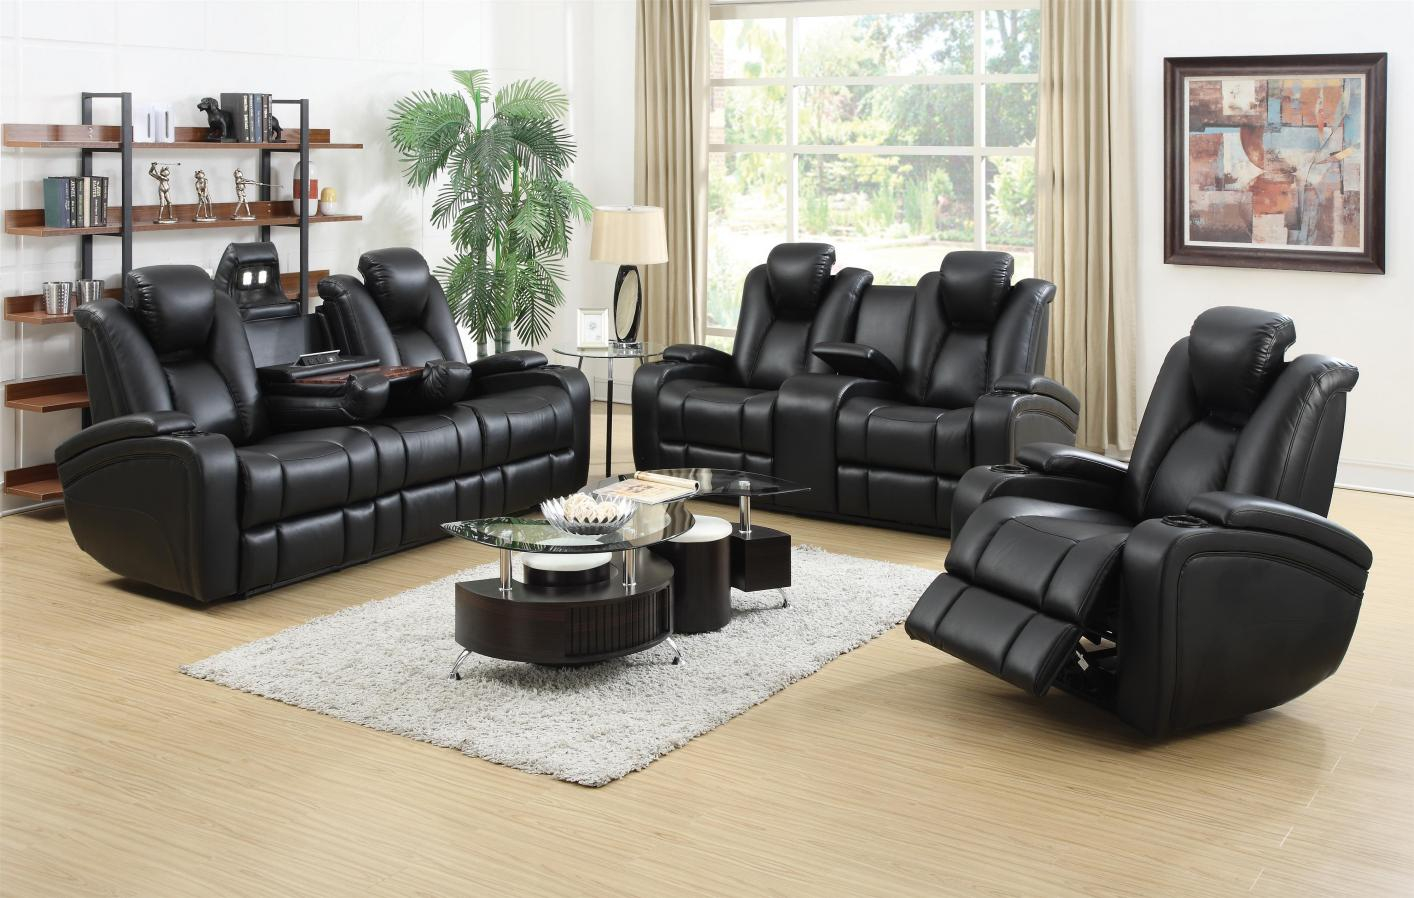 Black Leather Power Reclining Sofa And Loveseat Set Steal A Sofa inside 12 Awesome Tricks of How to Make Black Leather Living Room Set